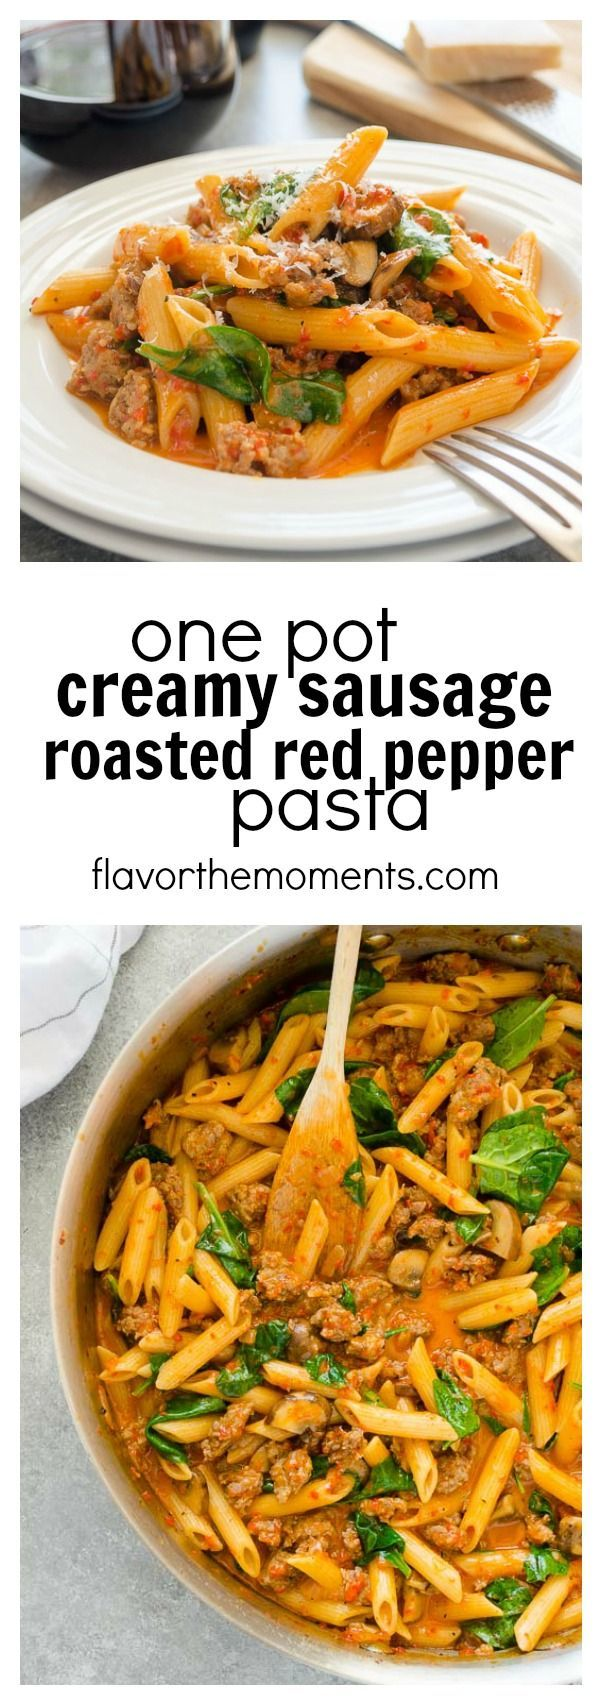 One Pot Creamy Sausage Roasted Red Pepper Pasta is ultra creamy and bursting with flavor!  This recipe comes together in 30 minutes and is perfect for busy weeknights and entertaining! #ad #talkofthetable Msg 4 21+ @BarillaUS @ClosduBois